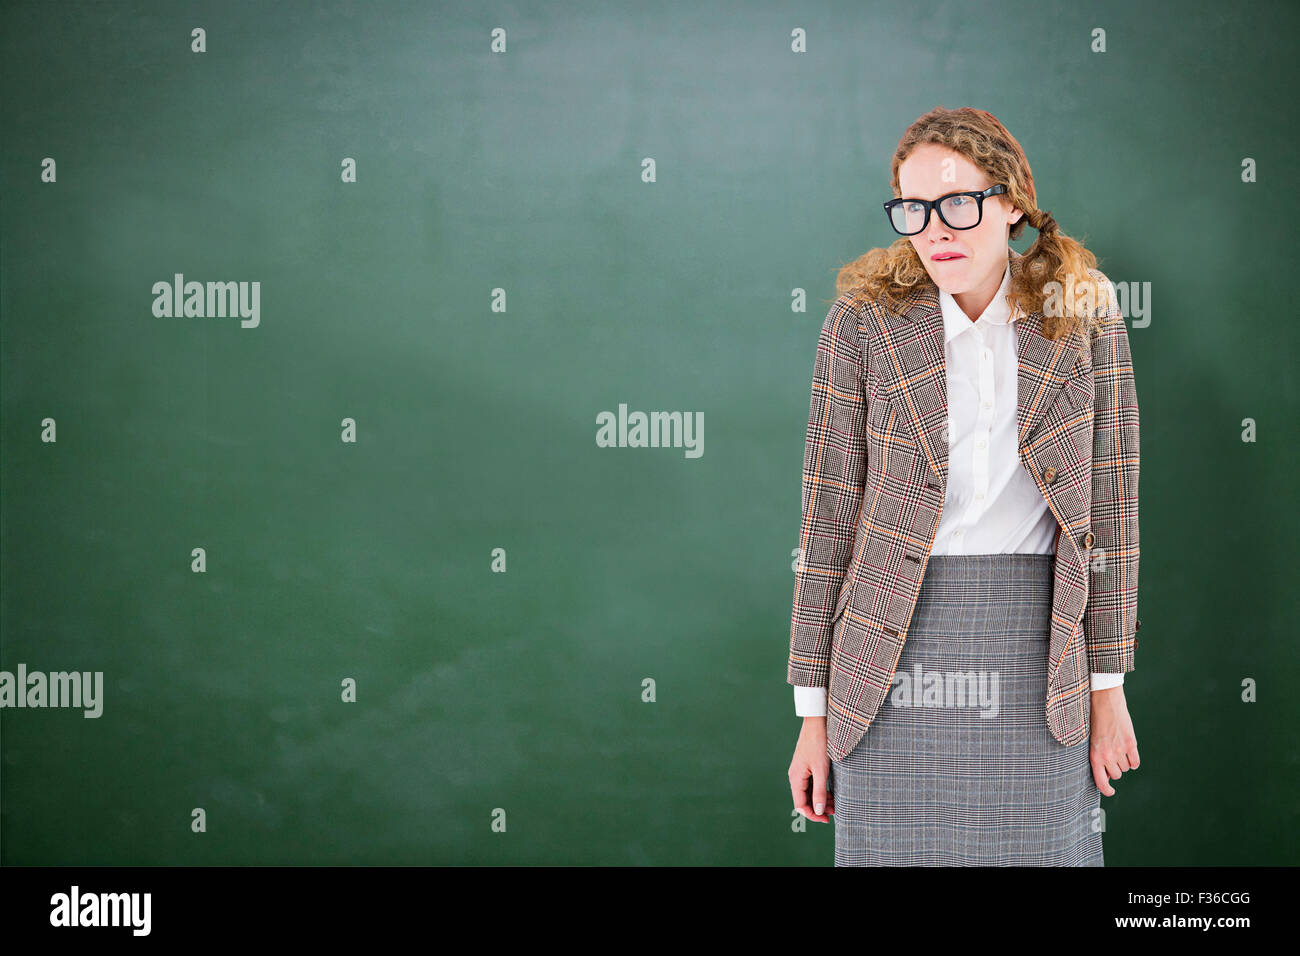 Composite image of geeky hipster woman looking nervous - Stock Image